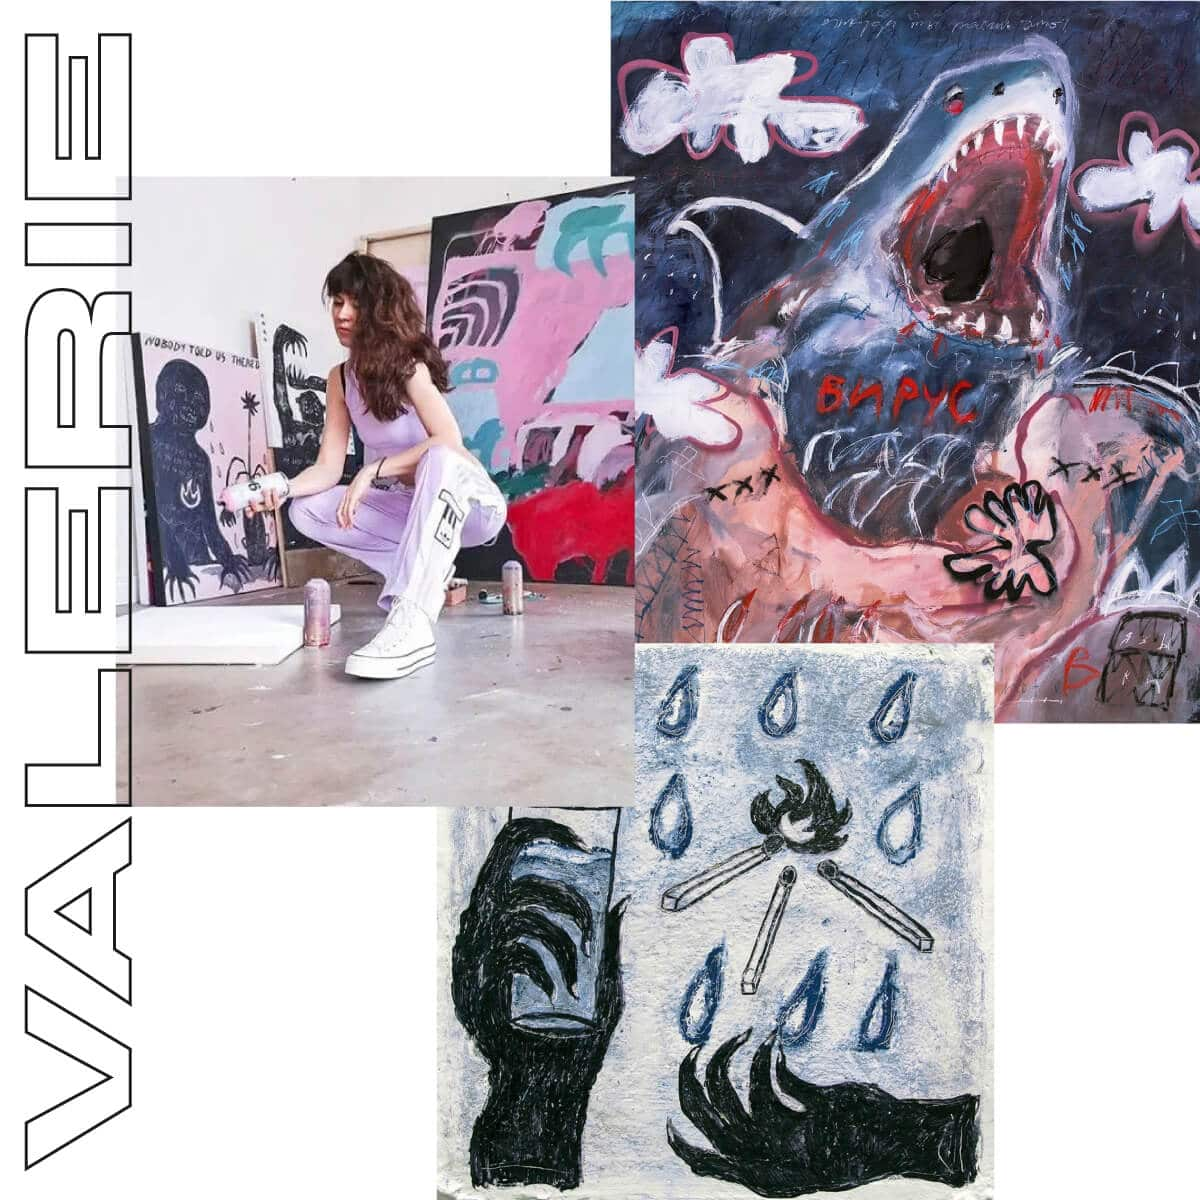 London based artist Valerie Savchits kneeing in her artist studio in front of two canvas paintings